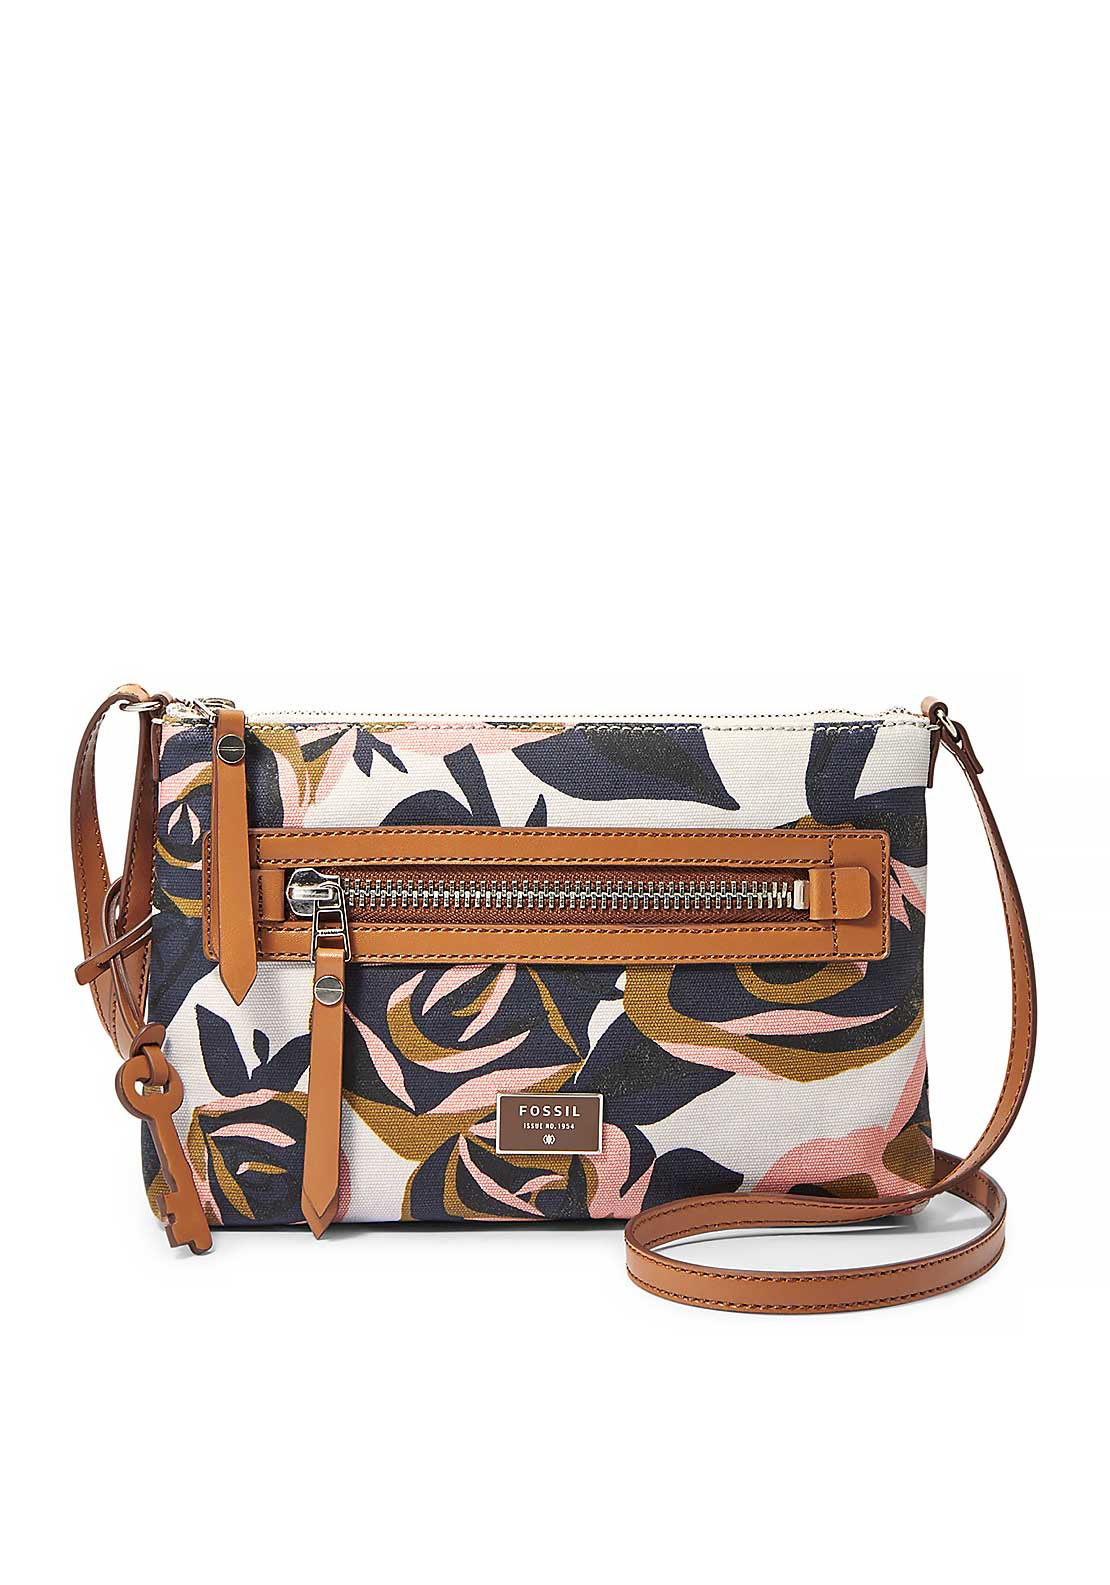 Fossil Dawson Crossbody Floral  Bag, Multi-Coloured